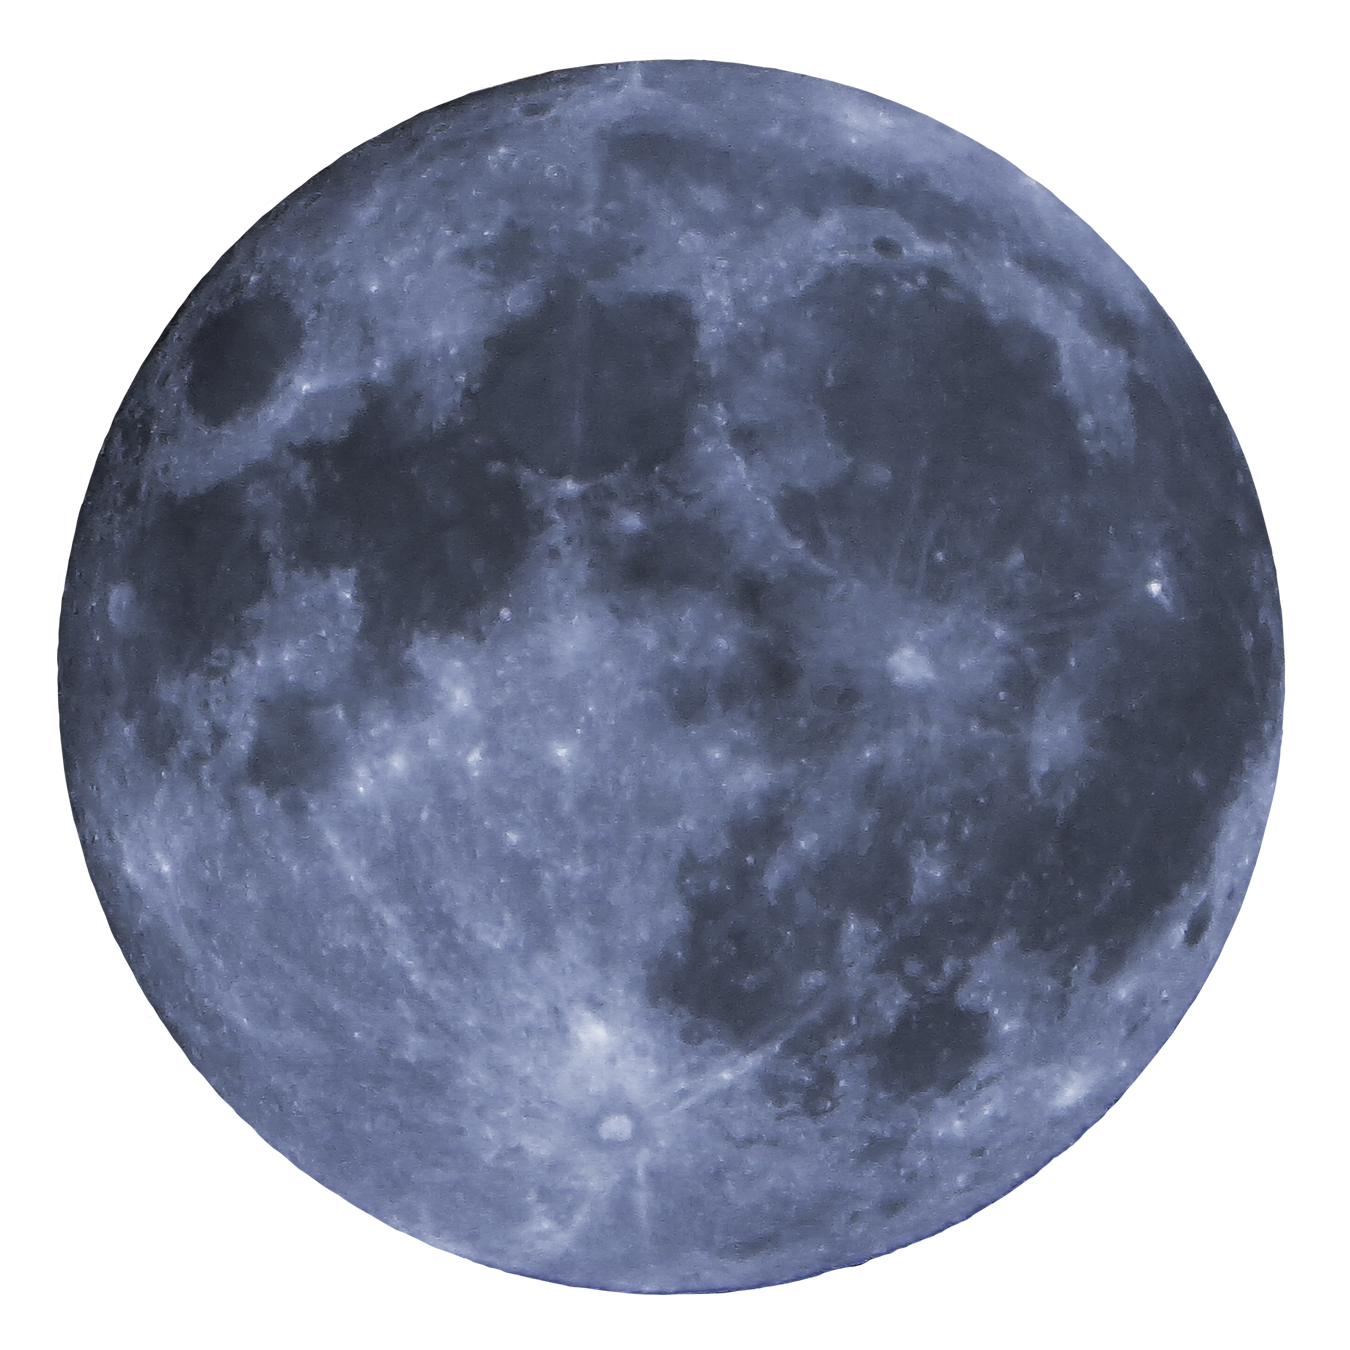 moon transparent background